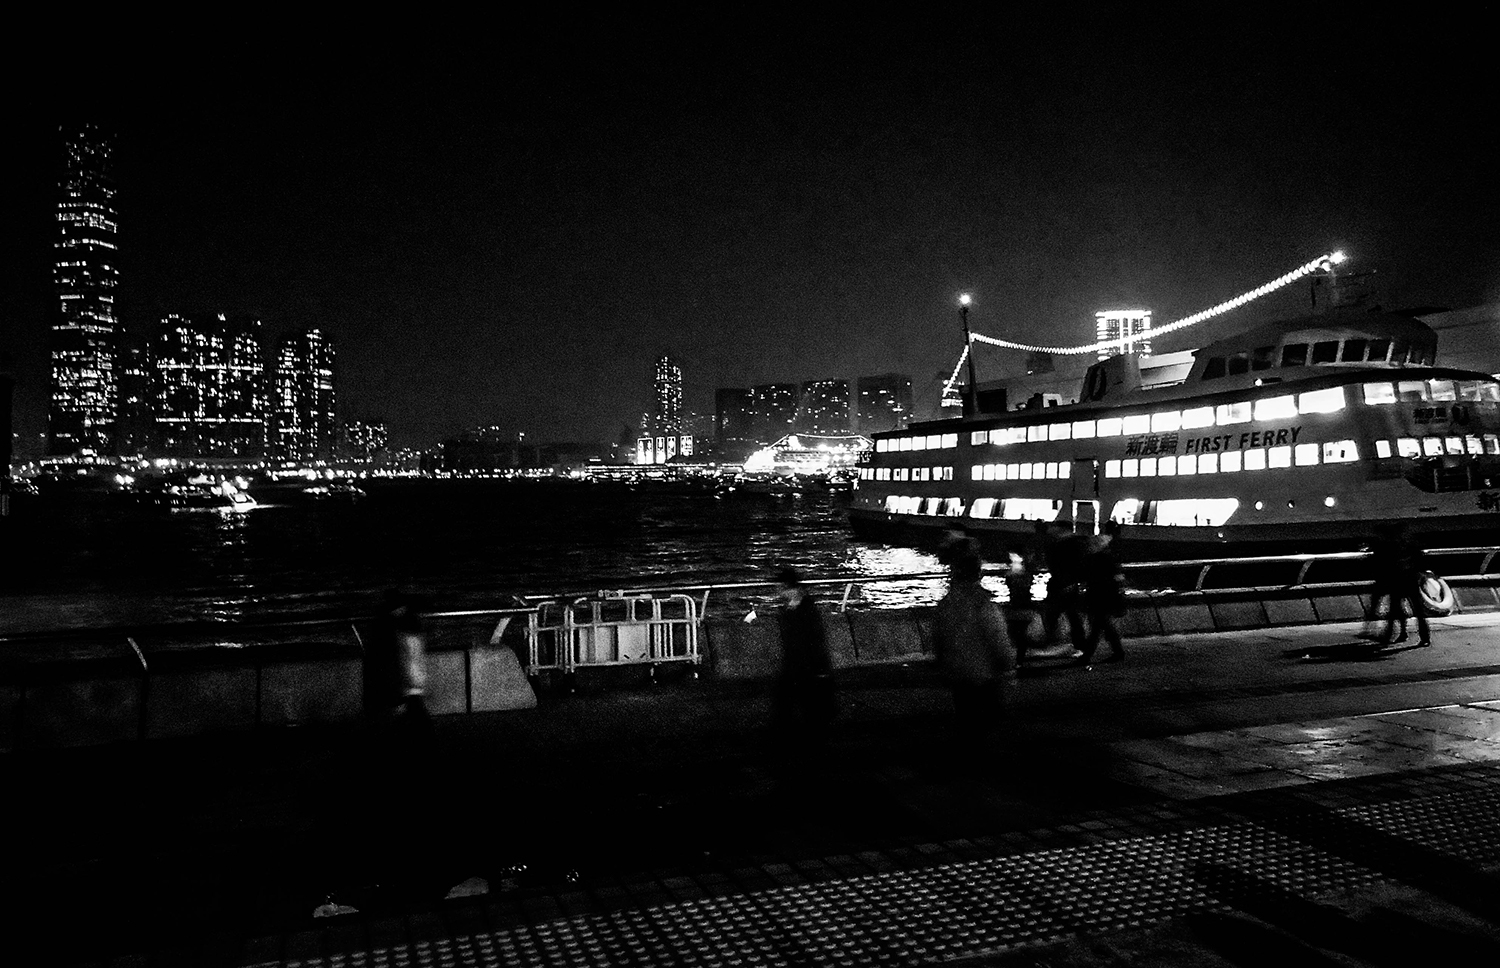 <p>Hong Kongers rush along the waterfront shortly before midnight on New Year's Eve 2013.</p>